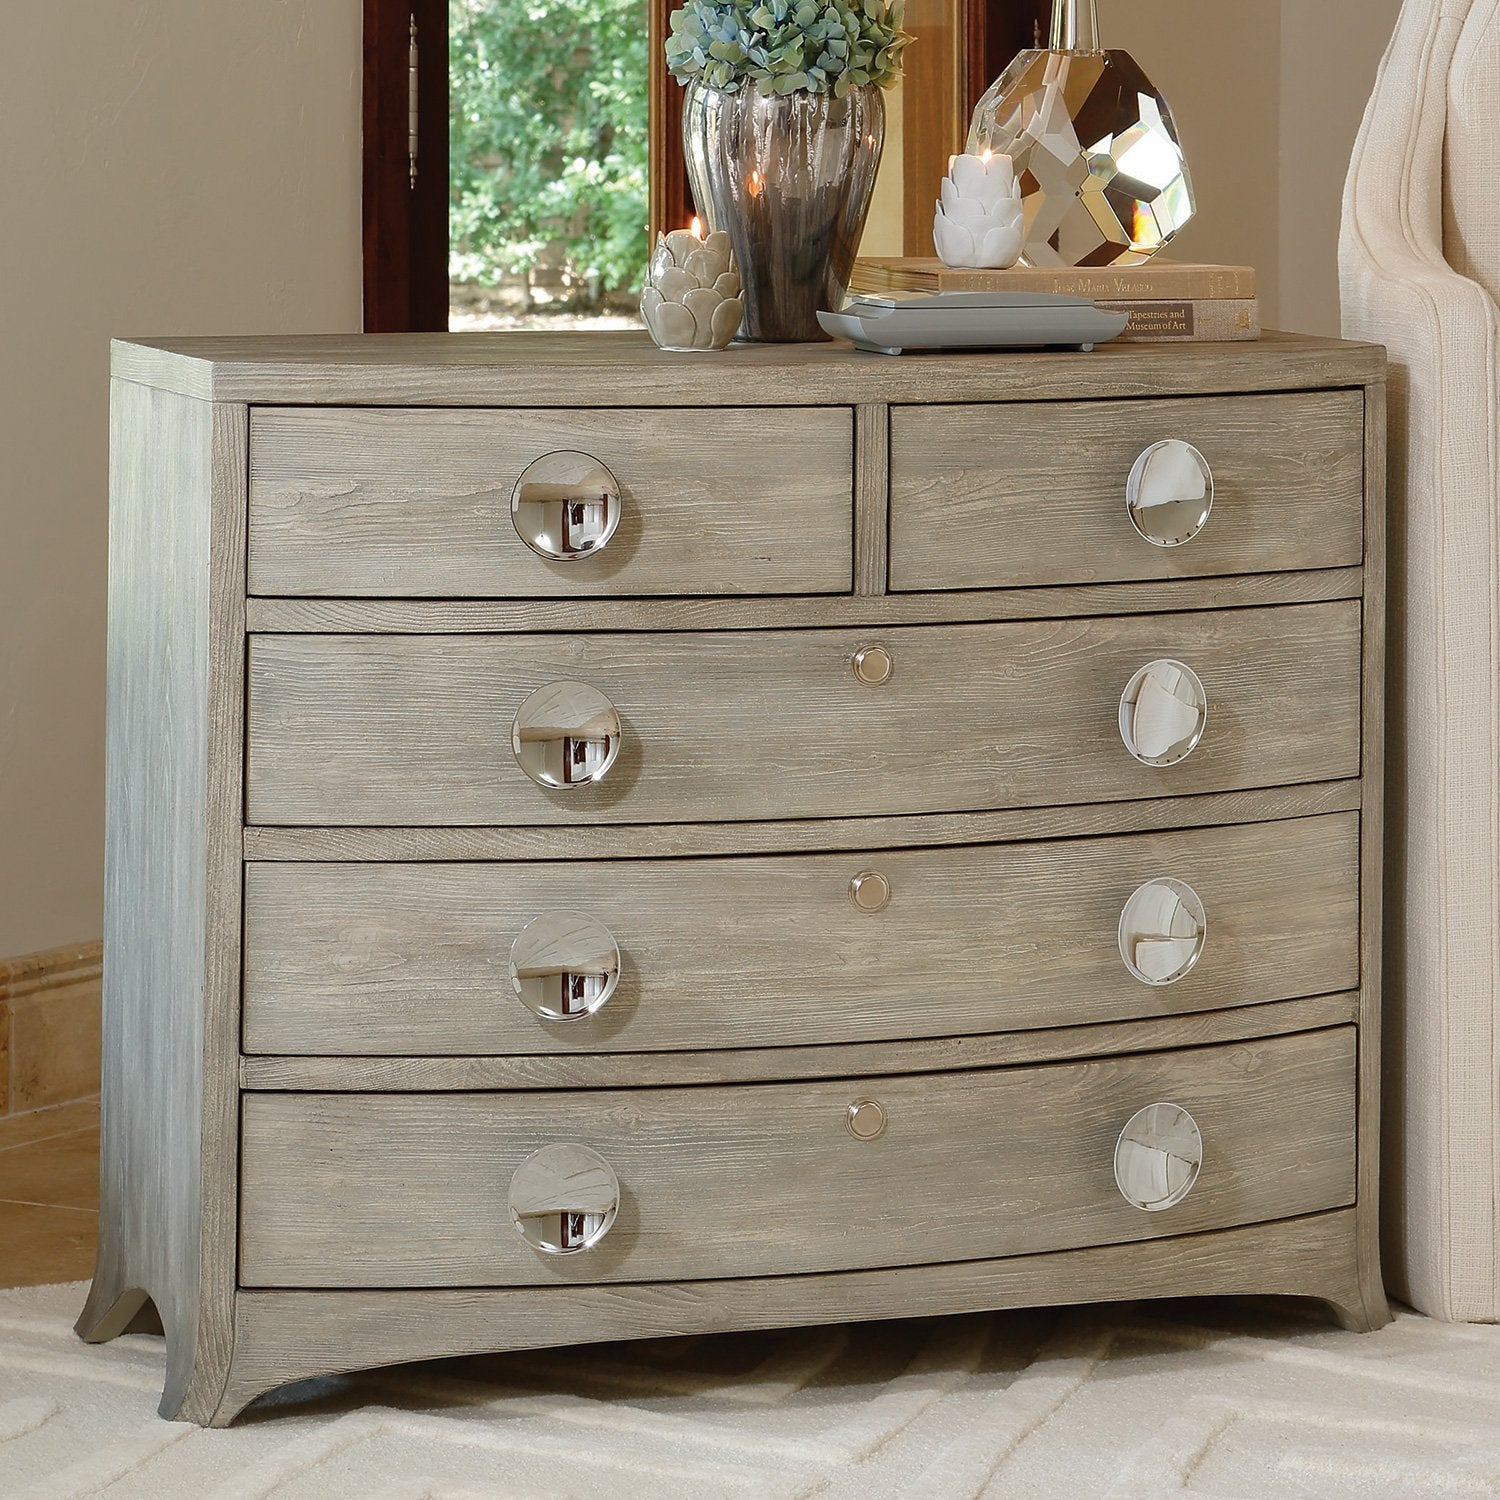 Global Views Dressers & Chests